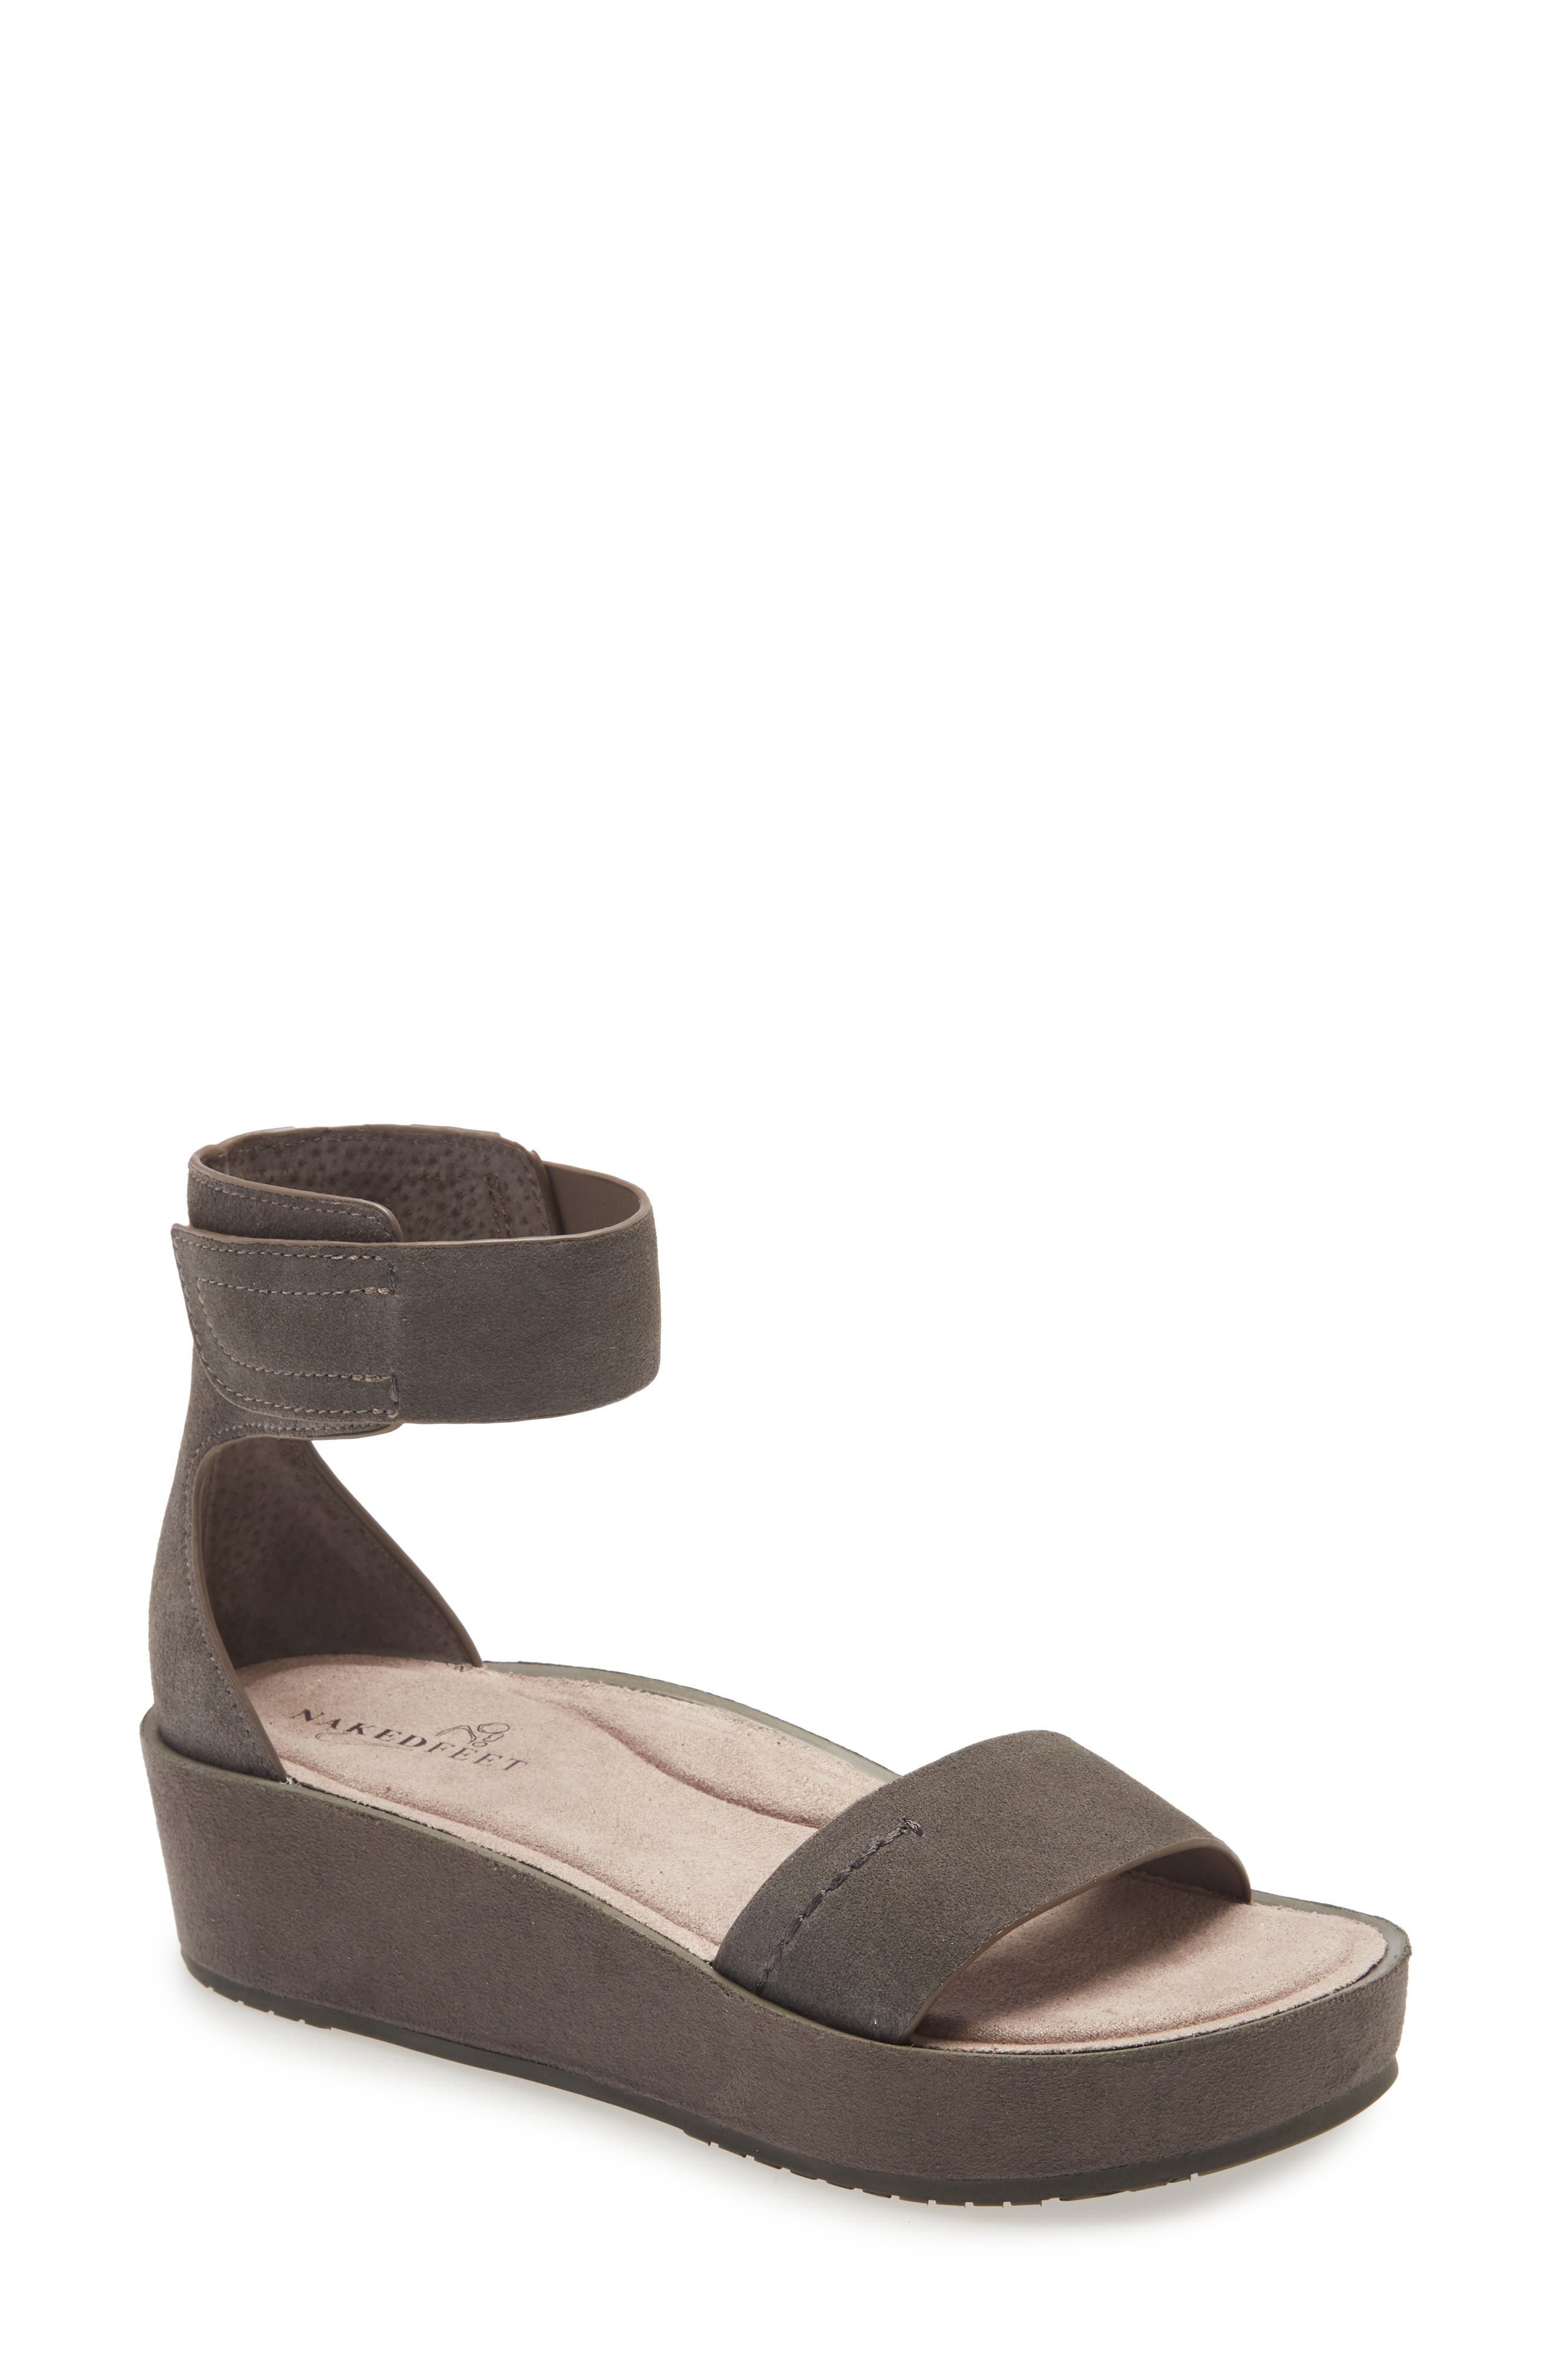 A pillowy footbed cushions every step in this modern ankle-strap sandal perched on a covered wedge and platform. Style Name: Naked Feet Renzi Platform Sandal (Women). Style Number: 6042923. Available in stores.